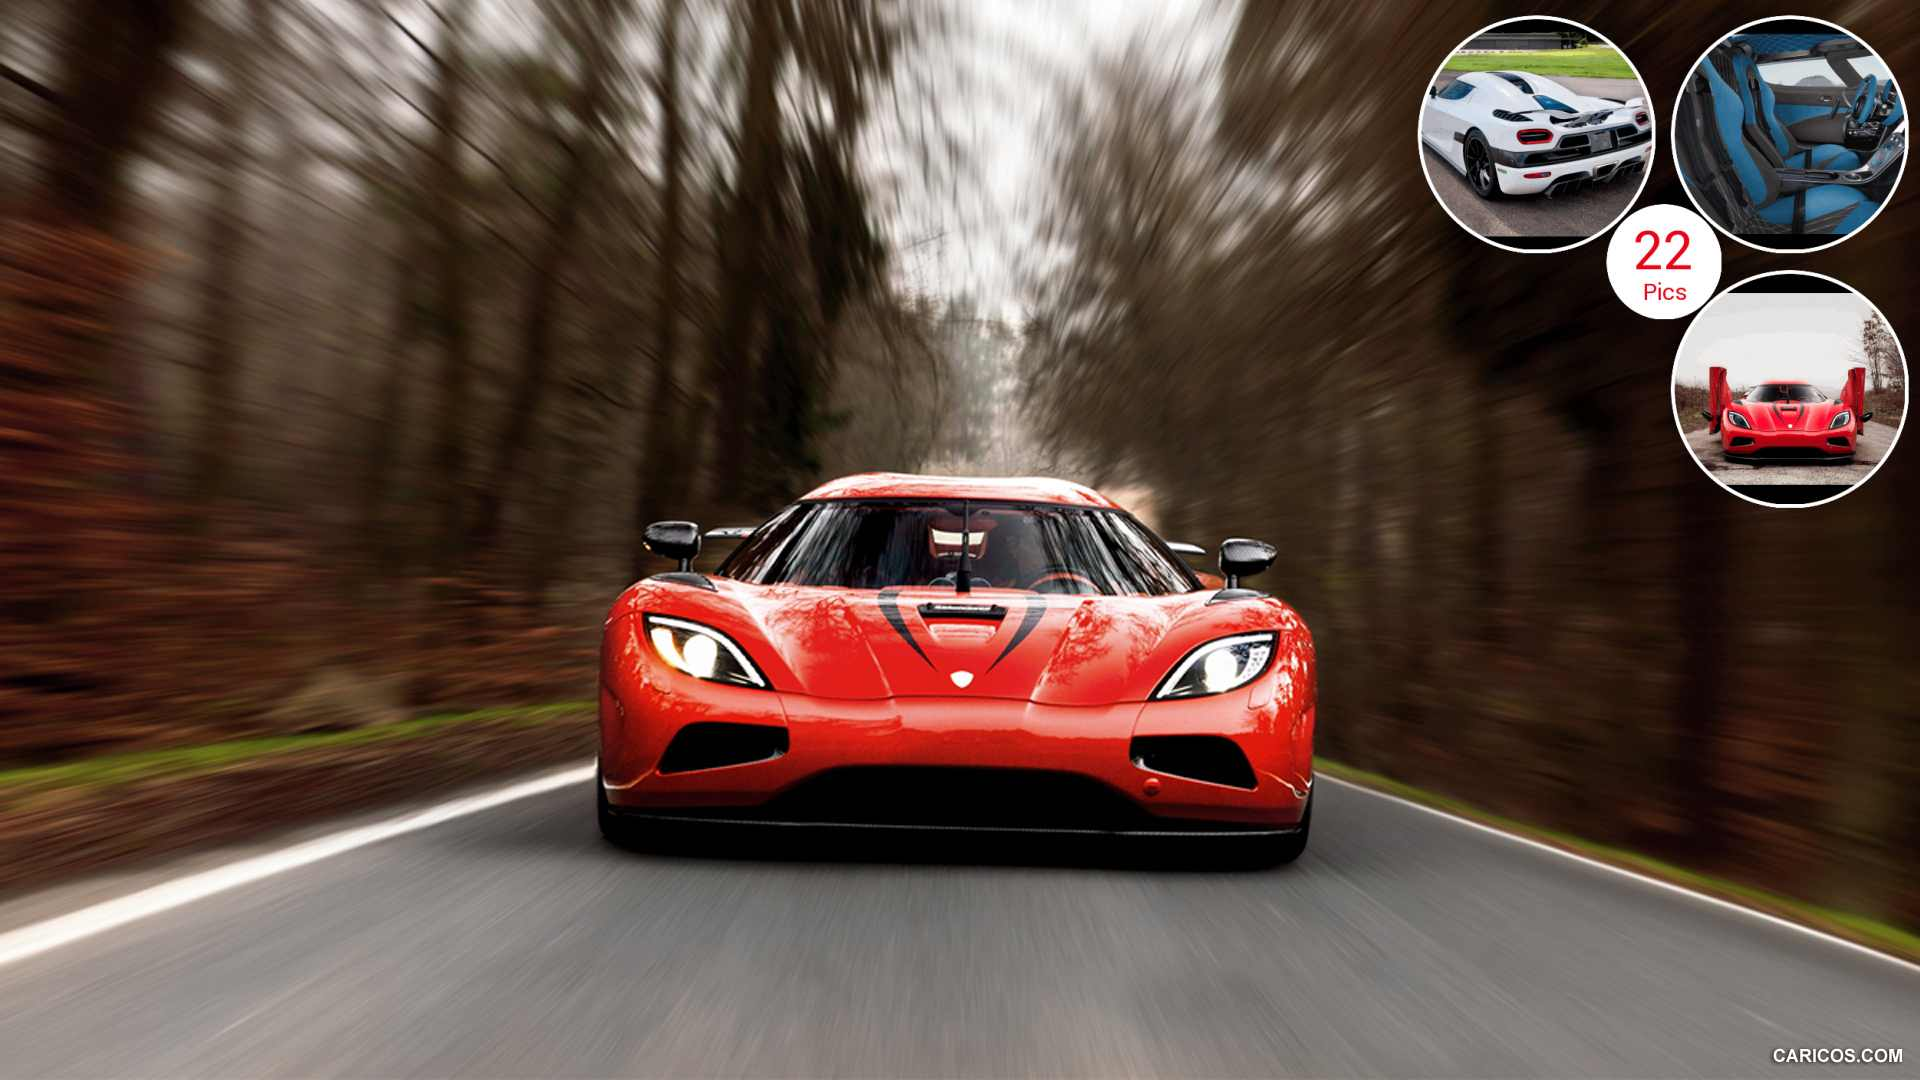 2013 Koenigsegg Agera R - Front | HD Wallpaper #12